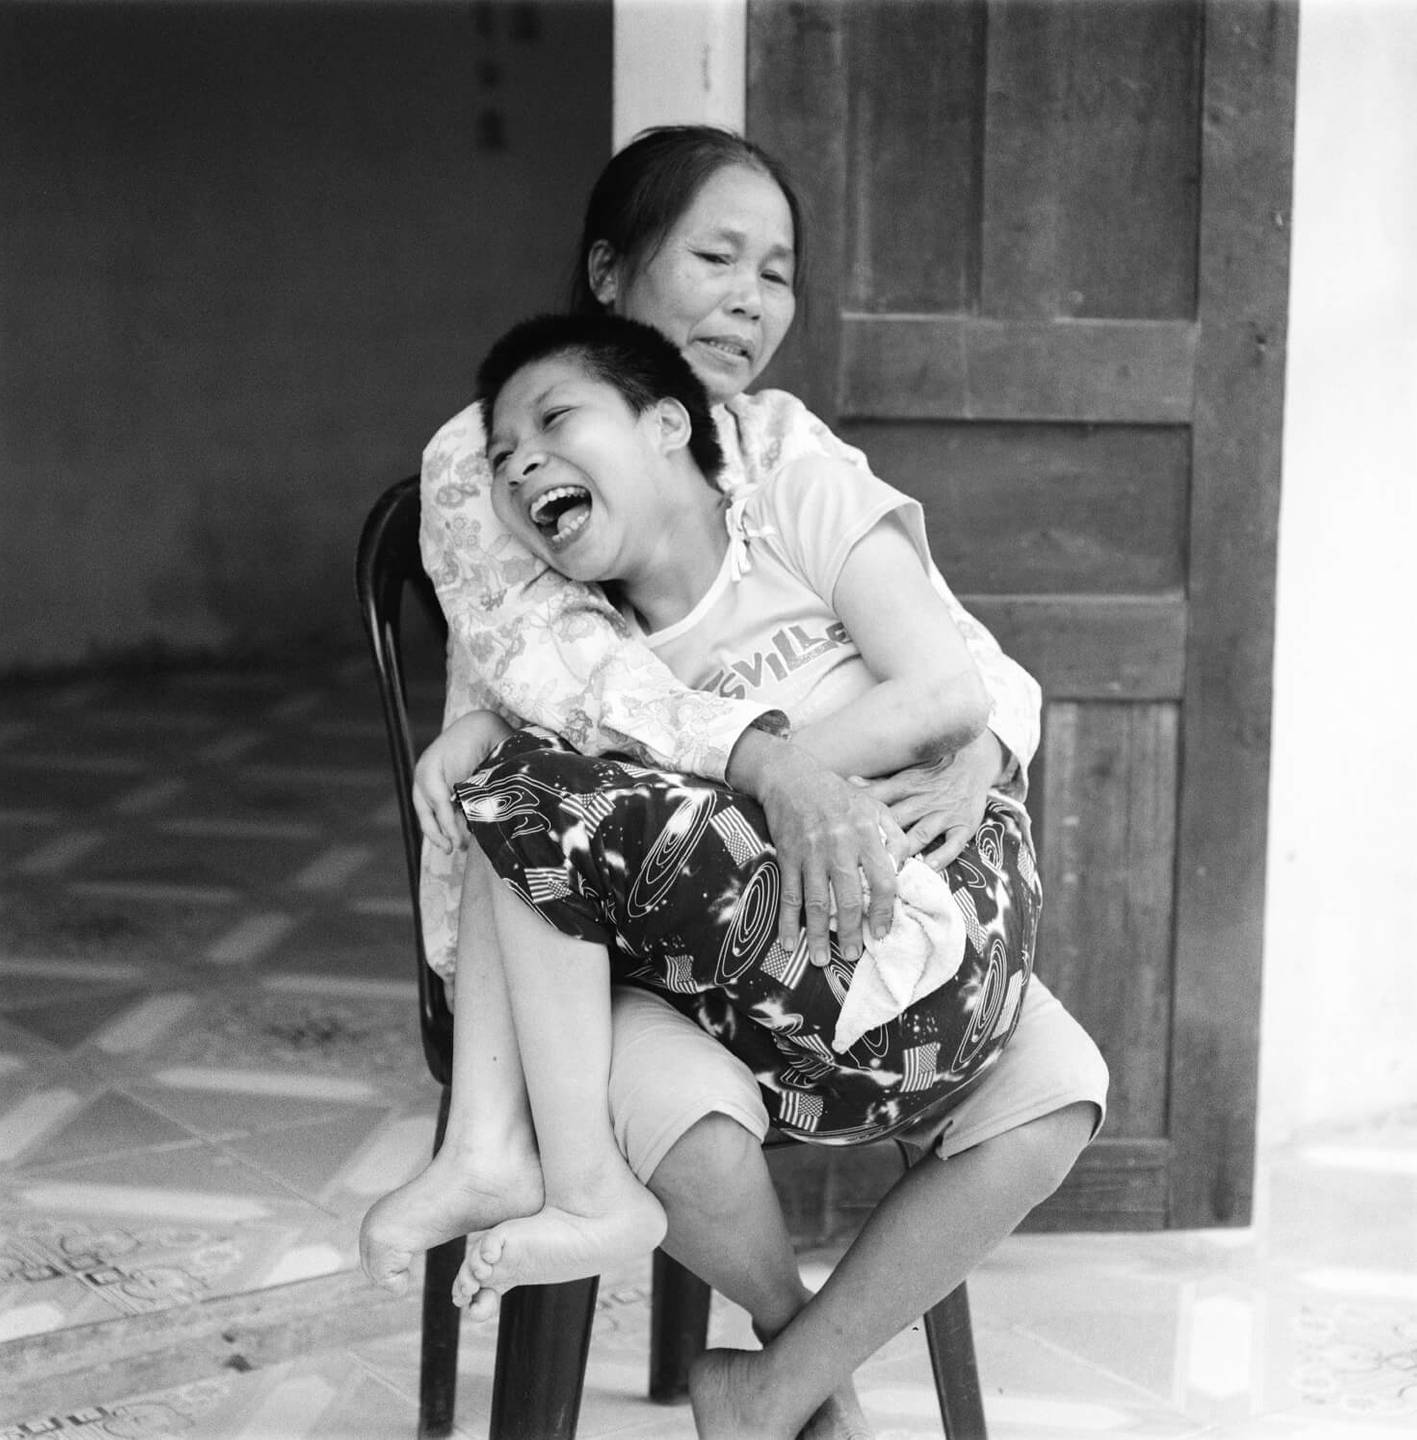 A smiling, deformed Asian child seated on a woman's lap. He is almost too big to hold.